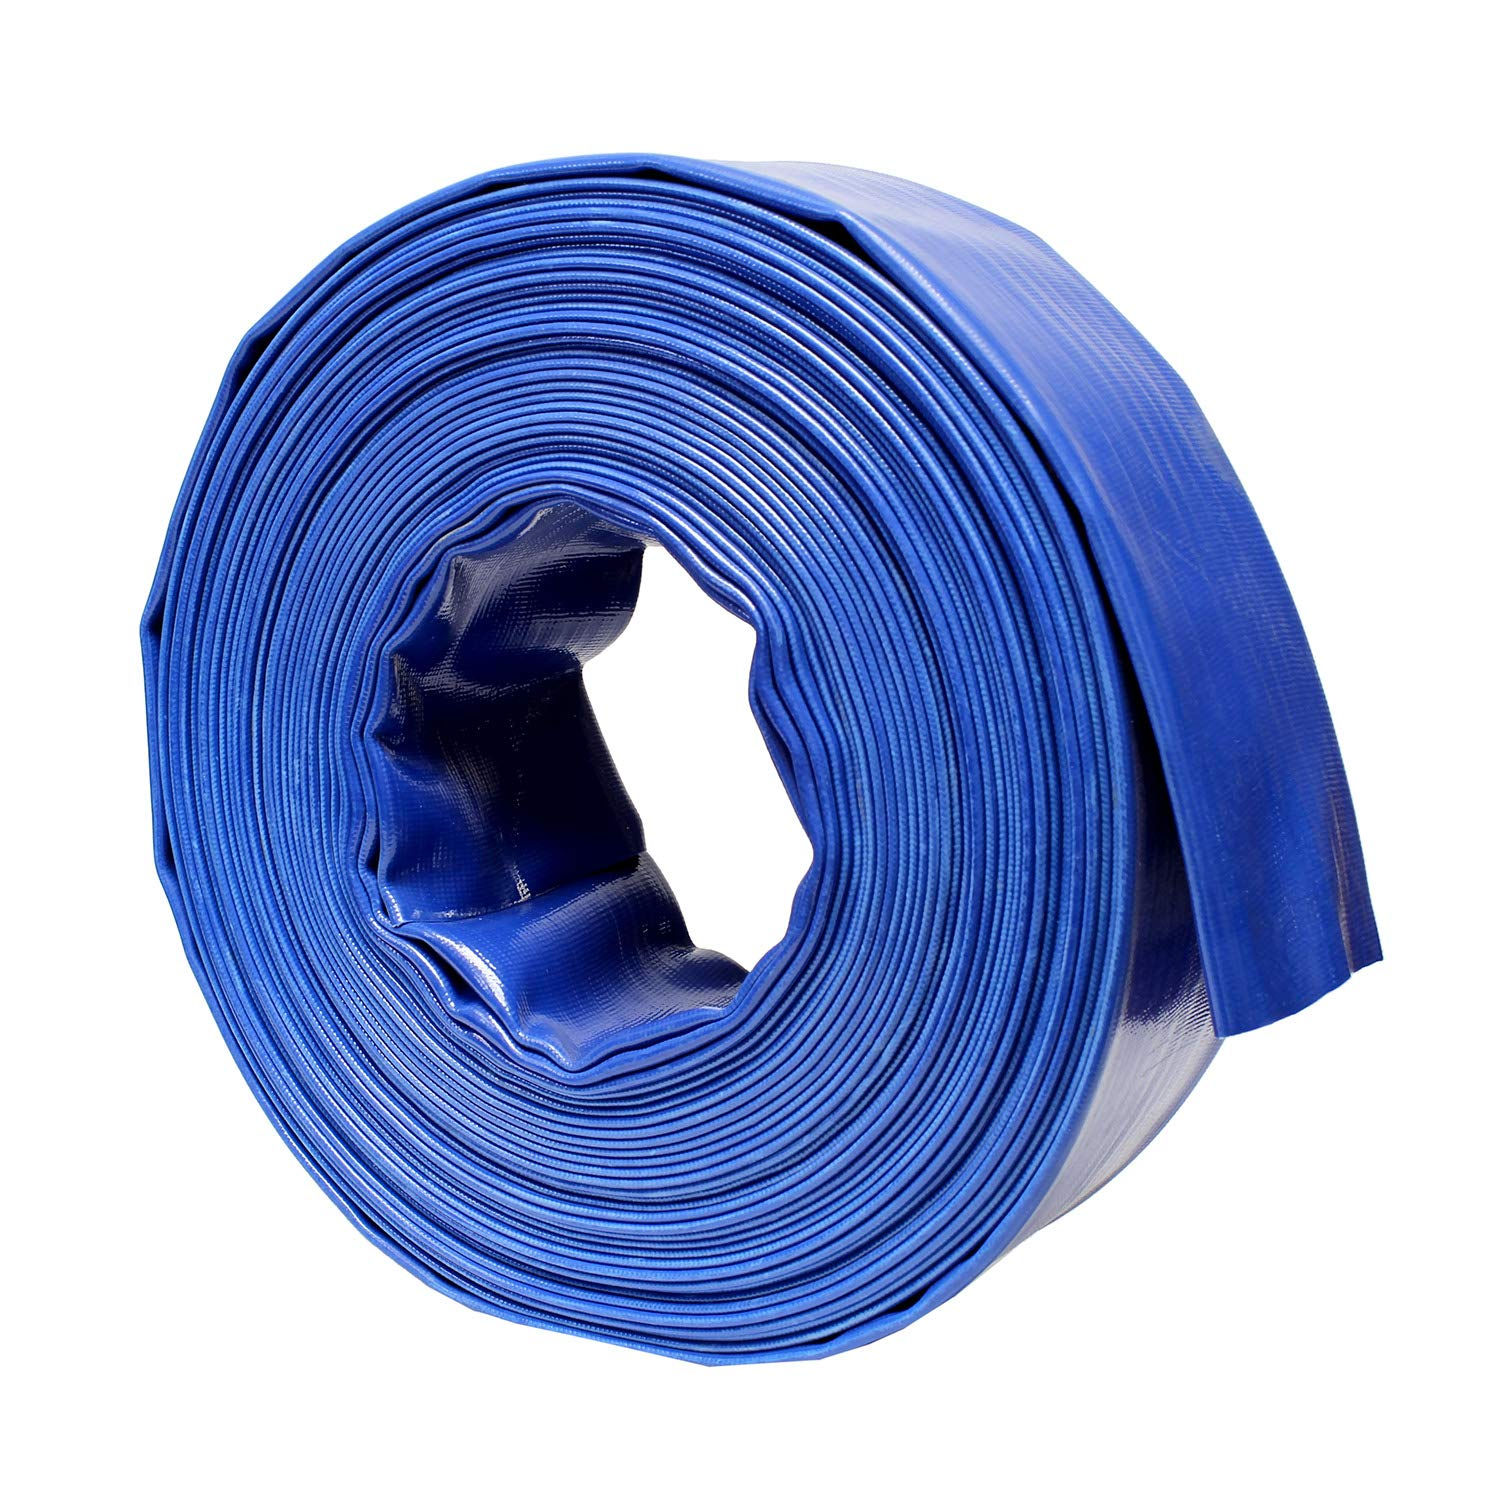 BISupply | Discharge Hose - 3'' in by 100' FT Flat Lay Sump Pump Discharge Hose, Blue PVC Backwash Hose by BISupply